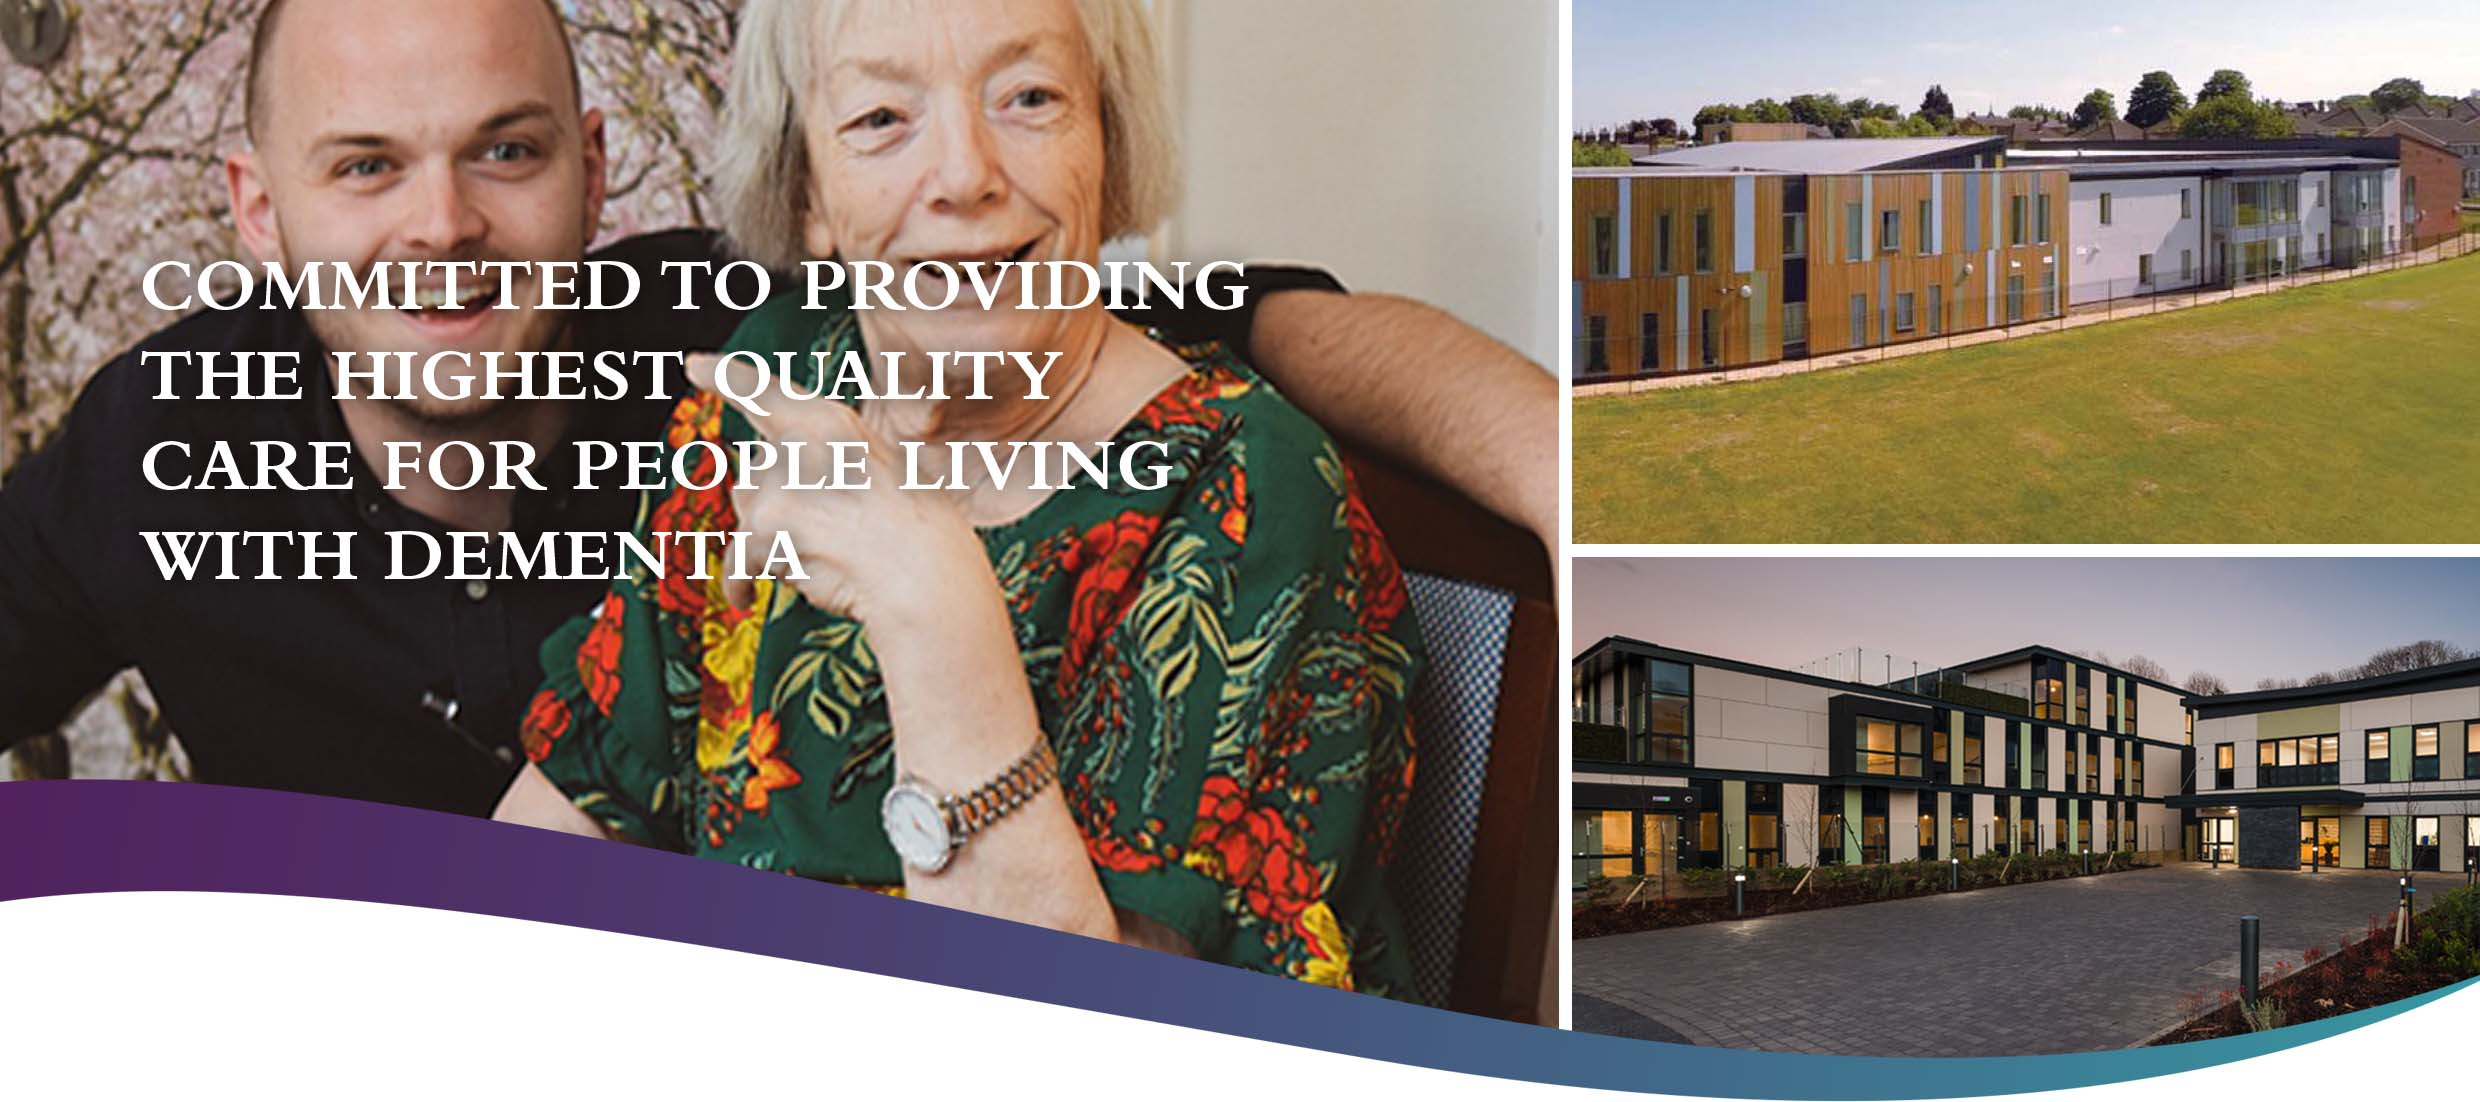 Committed to providing the highest quality care for people living with dementia